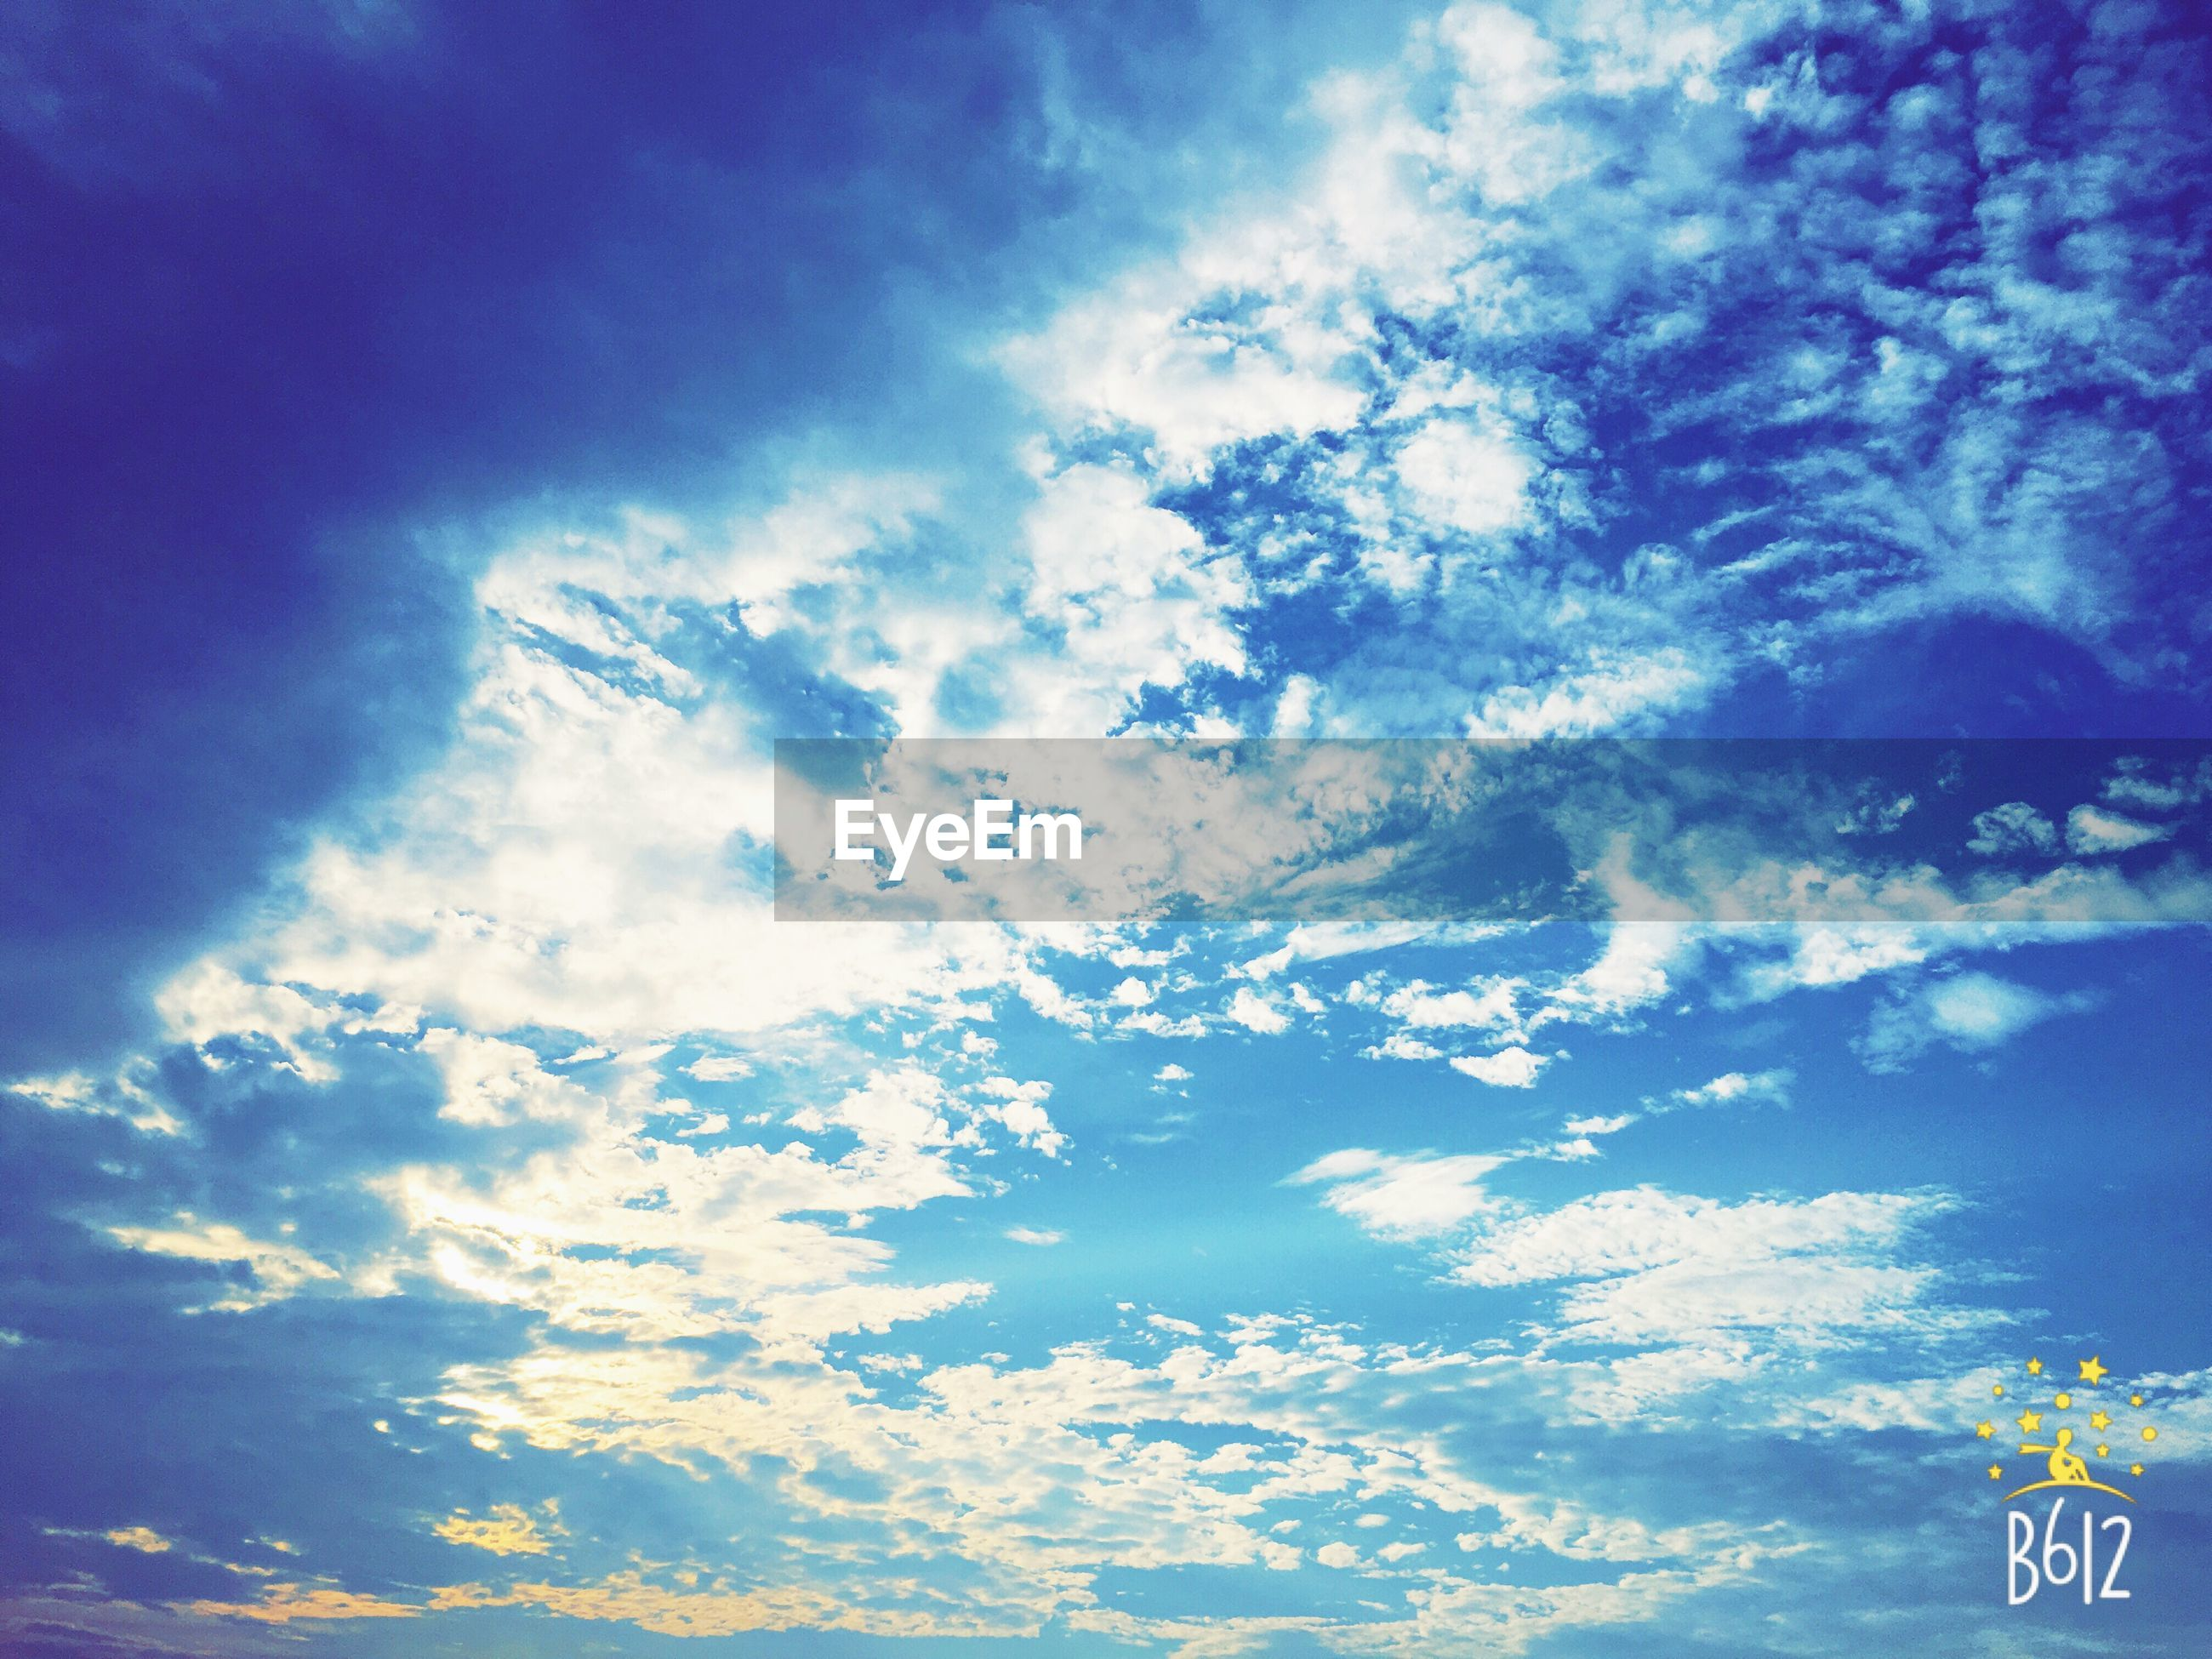 sky, cloud - sky, low angle view, blue, cloudy, cloud, tranquility, beauty in nature, scenics, nature, tranquil scene, outdoors, cloudscape, no people, day, idyllic, weather, white color, backgrounds, sky only